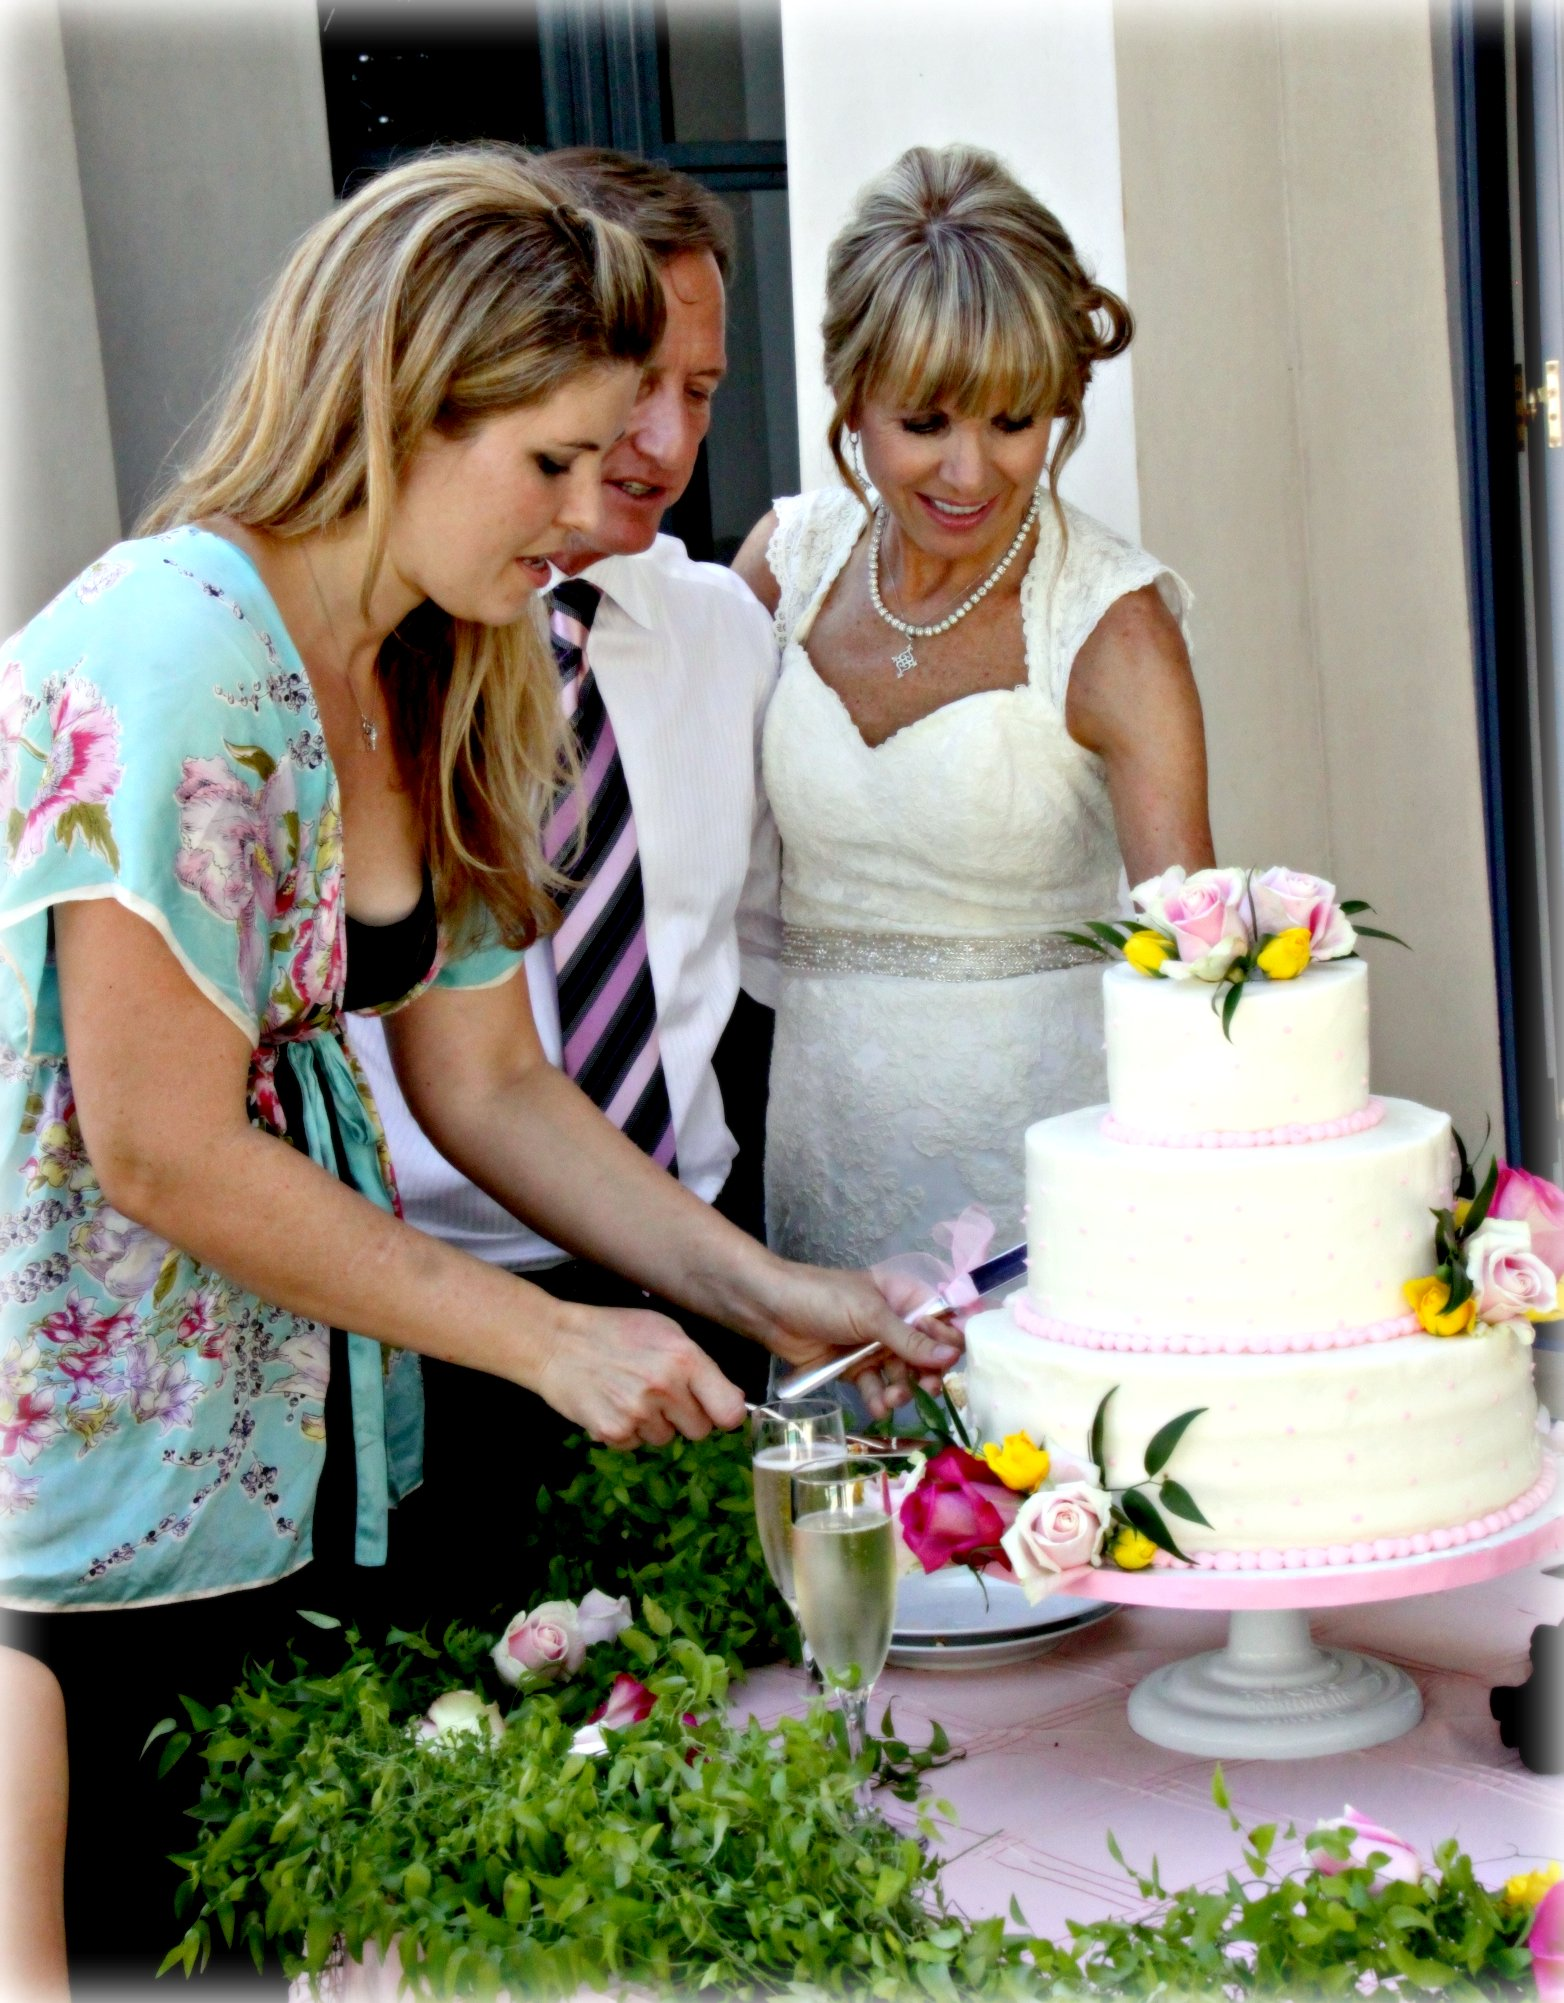 bobby and sylvia cutting cake